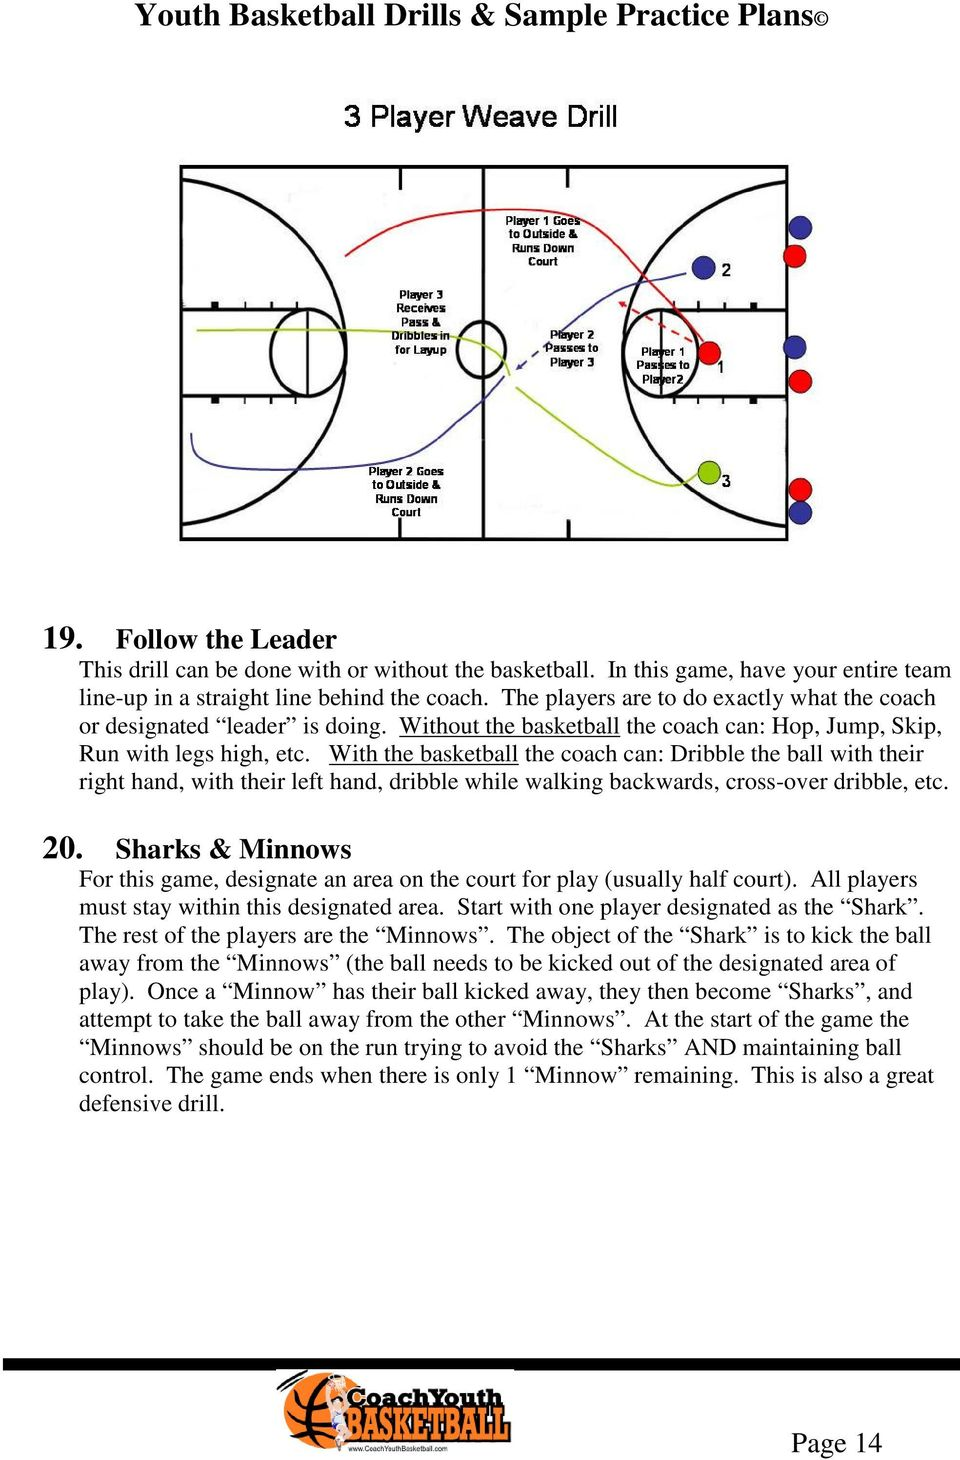 With the basketball the coach can: Dribble the ball with their right hand, with their left hand, dribble while walking backwards, cross-over dribble, etc. 20.